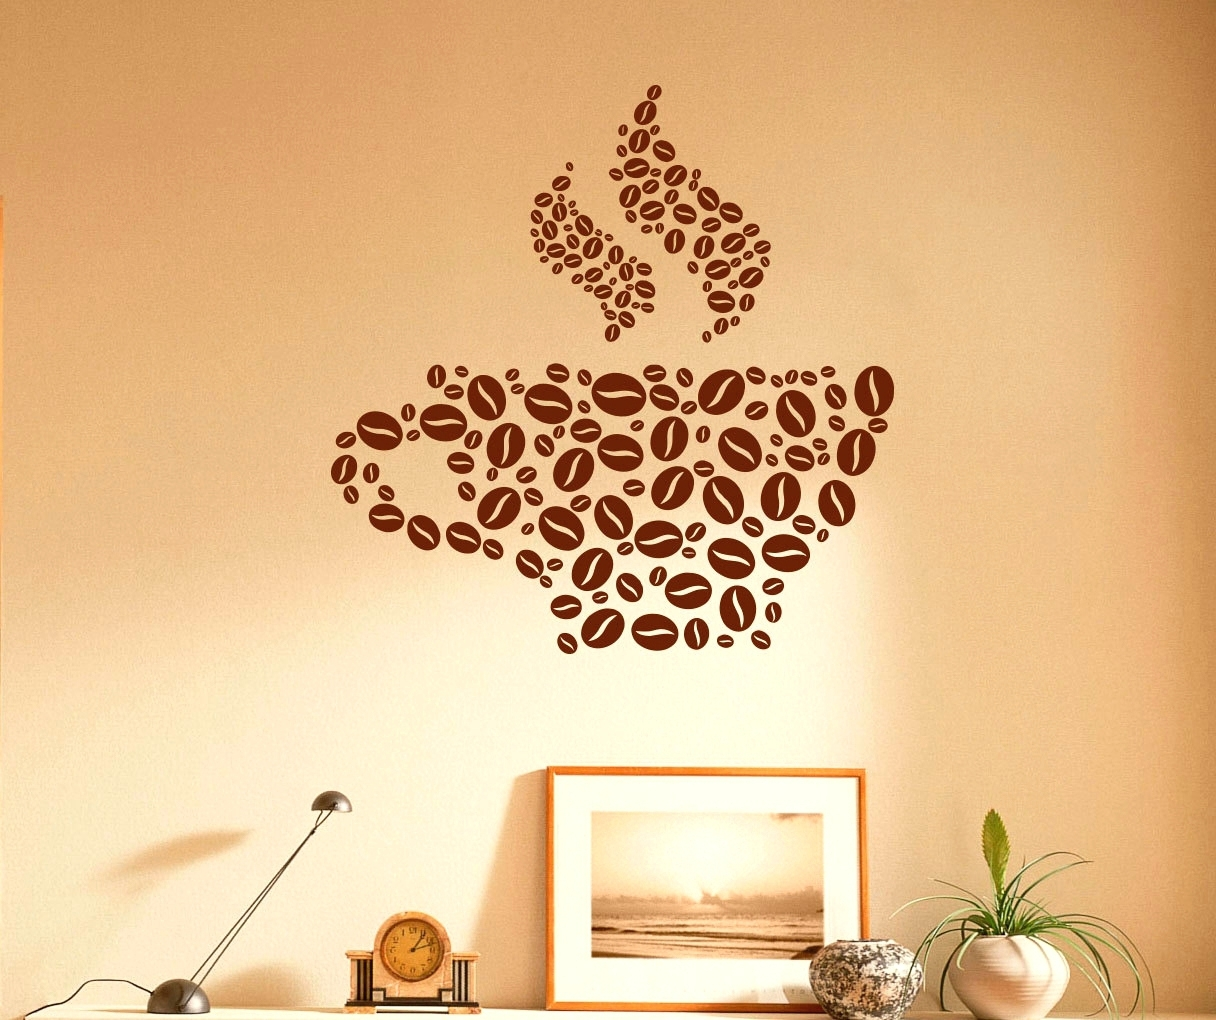 15 Ideas of Italian Cafe Wall Art